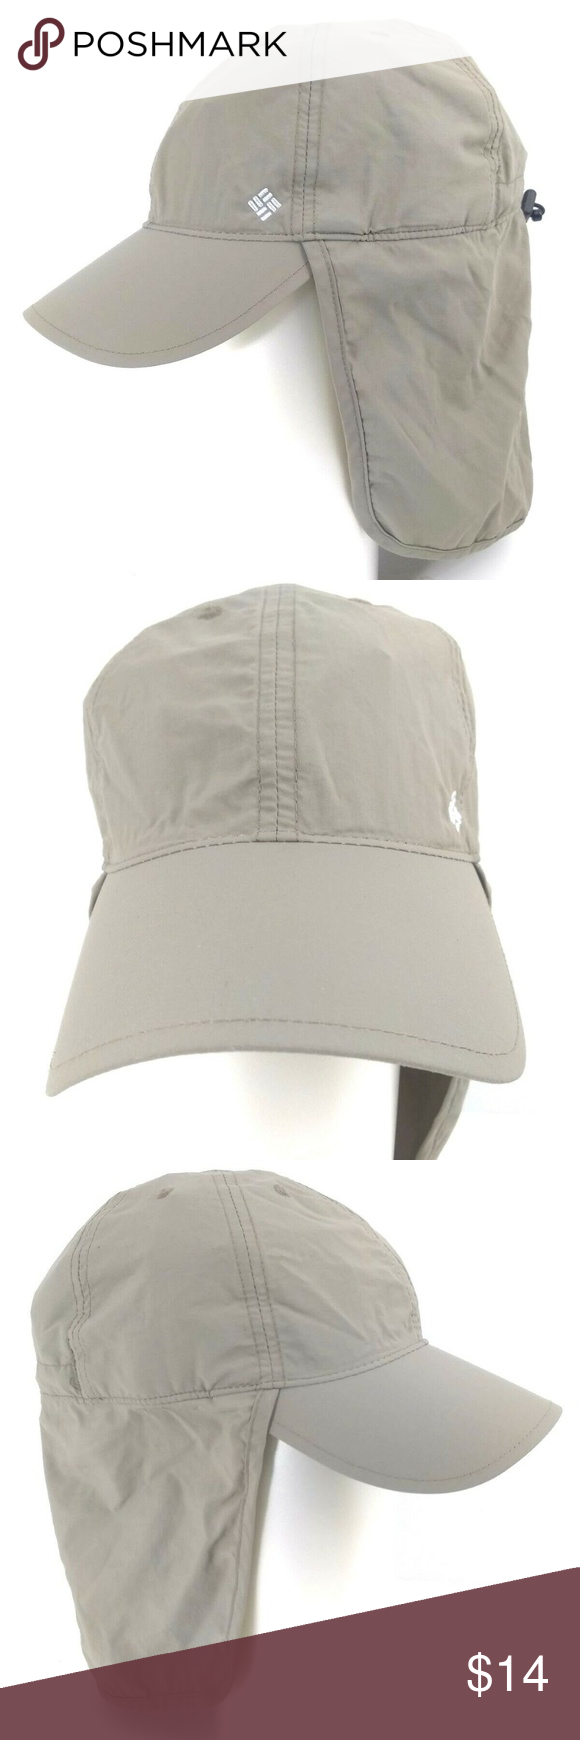 Columbia PFG Omni Shade Fishing Hat Cap Unisex Columbia Fishing Hat Cap  Neck Flap Beach Hiking 1a30788994a